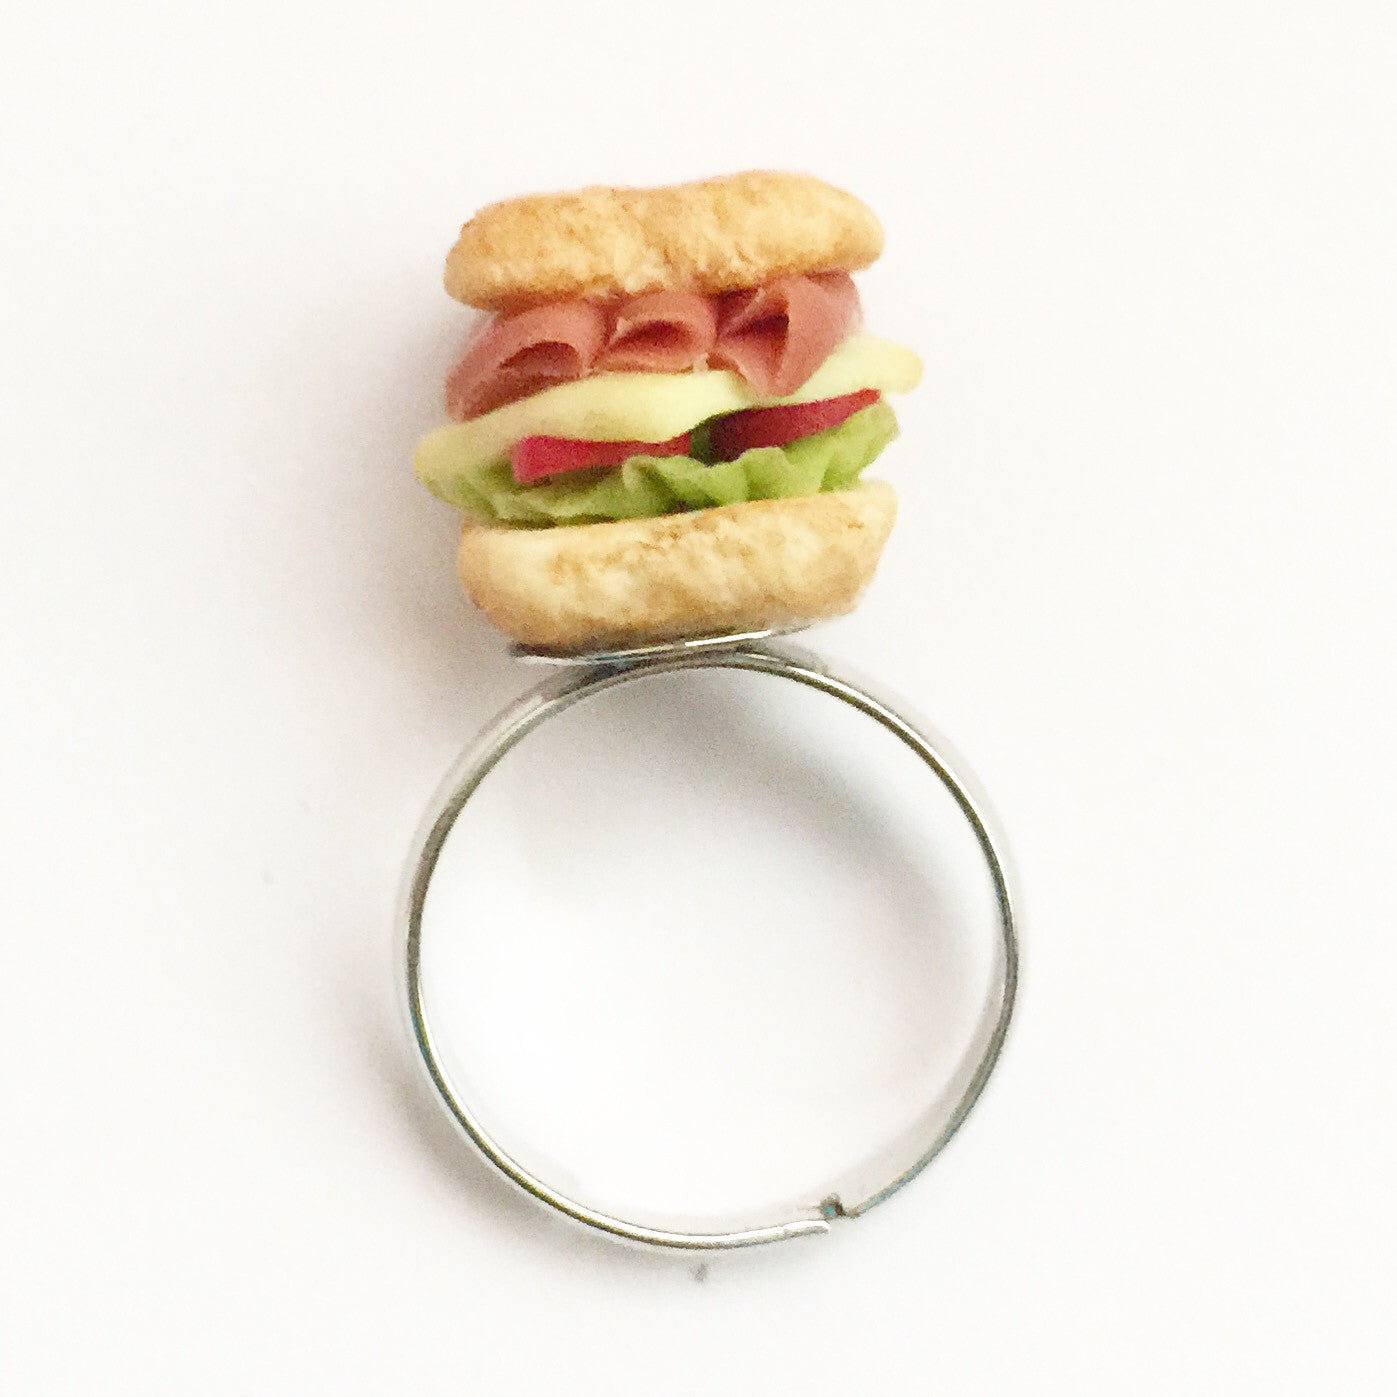 club sandwich ring - Jillicious charms and accessories - 4